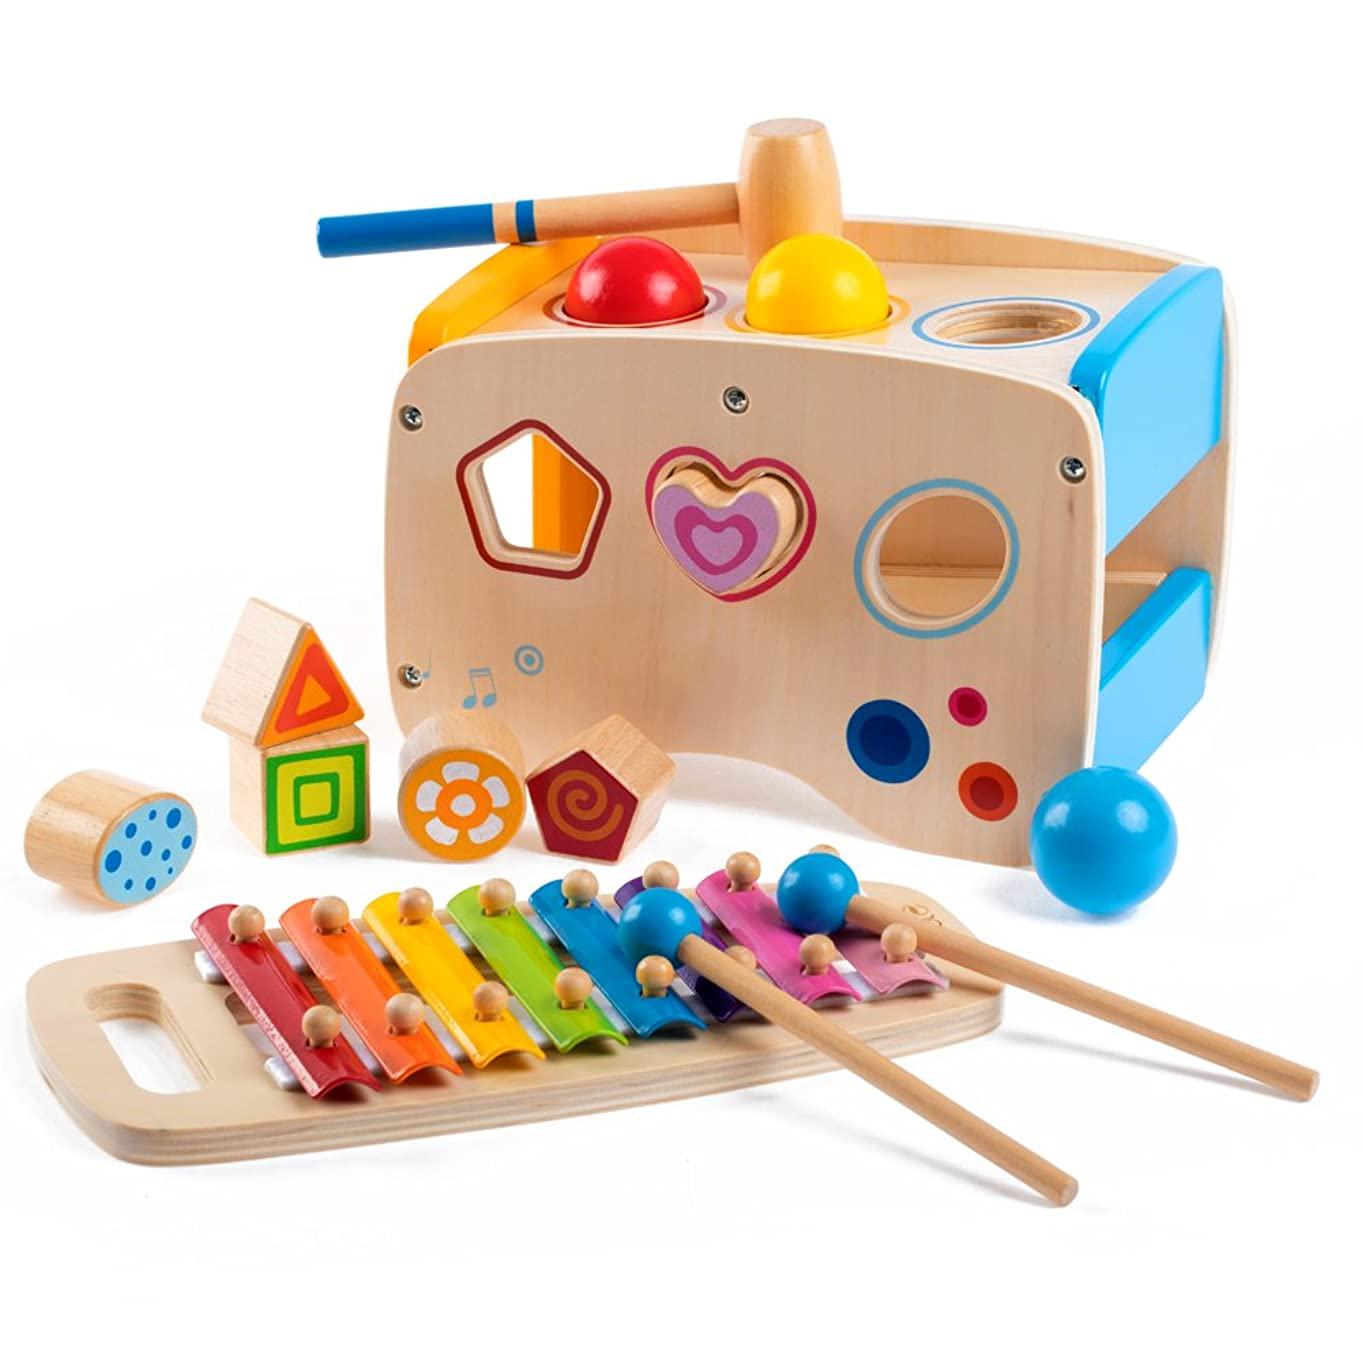 rolimate Wooden Learning Hammering & Pounding Toys + 8 Notes Xylophone + Shape Color Recognition, Best Birthday Gift Toy for Age 1 2 3 Years Old and Up Kid Children Baby Toddler Boy Girl